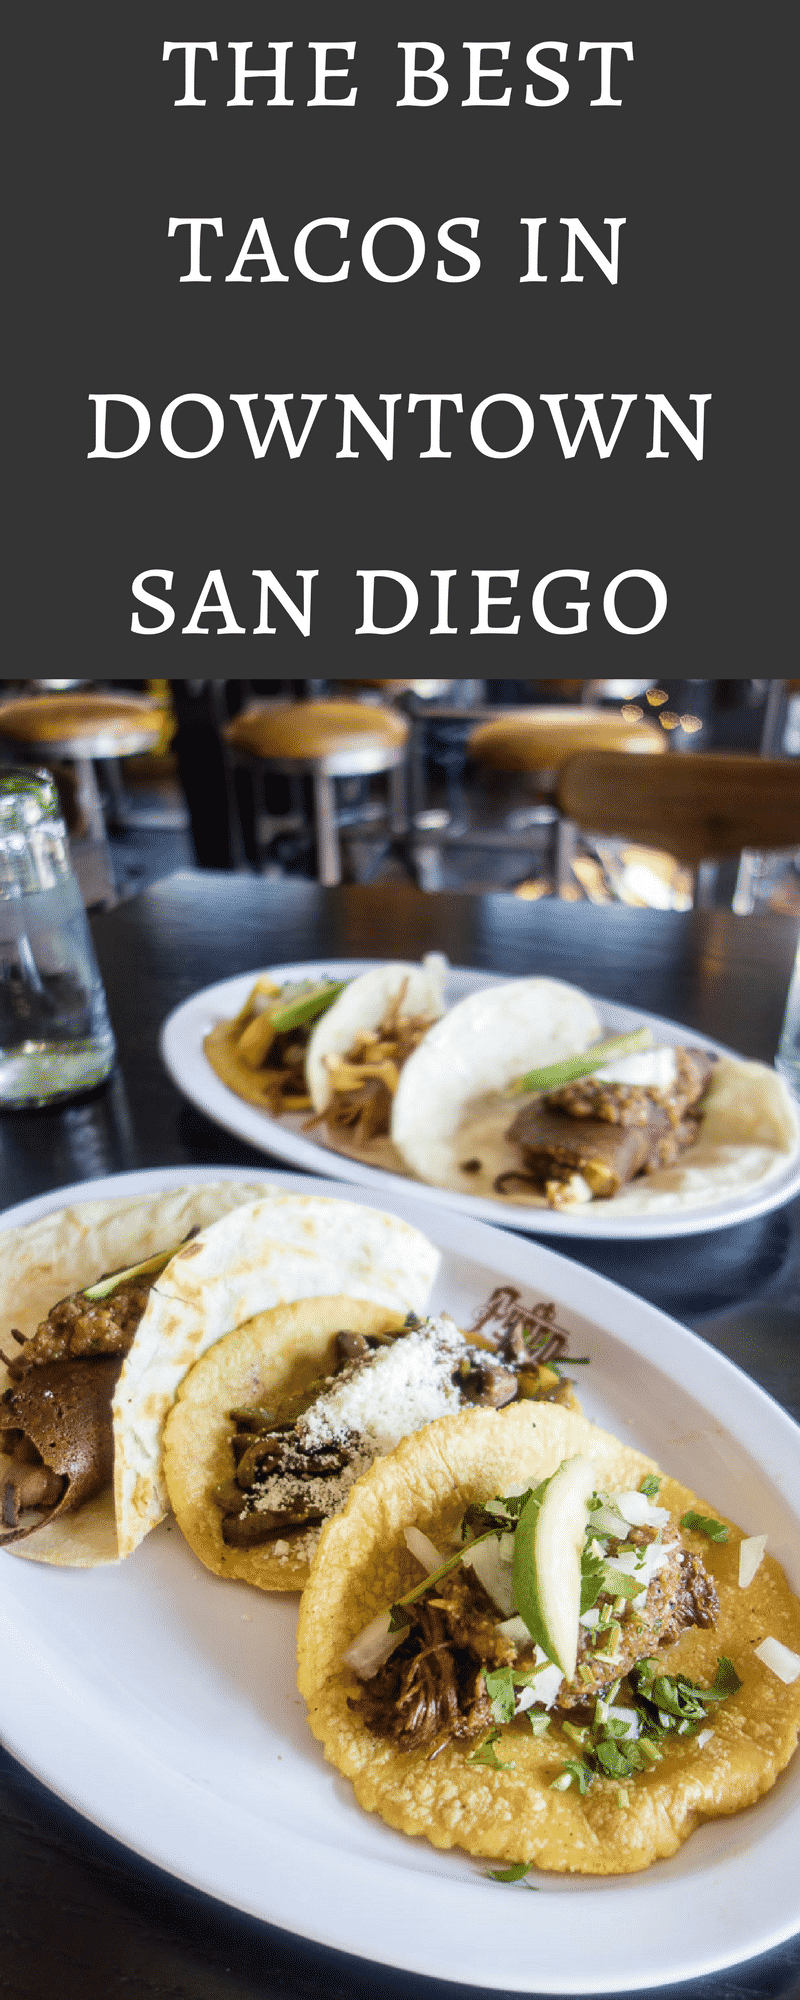 Learn where to find the best places to get tacos in downtown San Diego. From carne asada and al pastor to poblano and nopal (cactus), there is something for everyone! best tacos san diego | best mexican food san diego | best restaurants san diego | downtown san diego restaurants | best food of san diego | visiting san diego | san diego tourism | eating in san diego